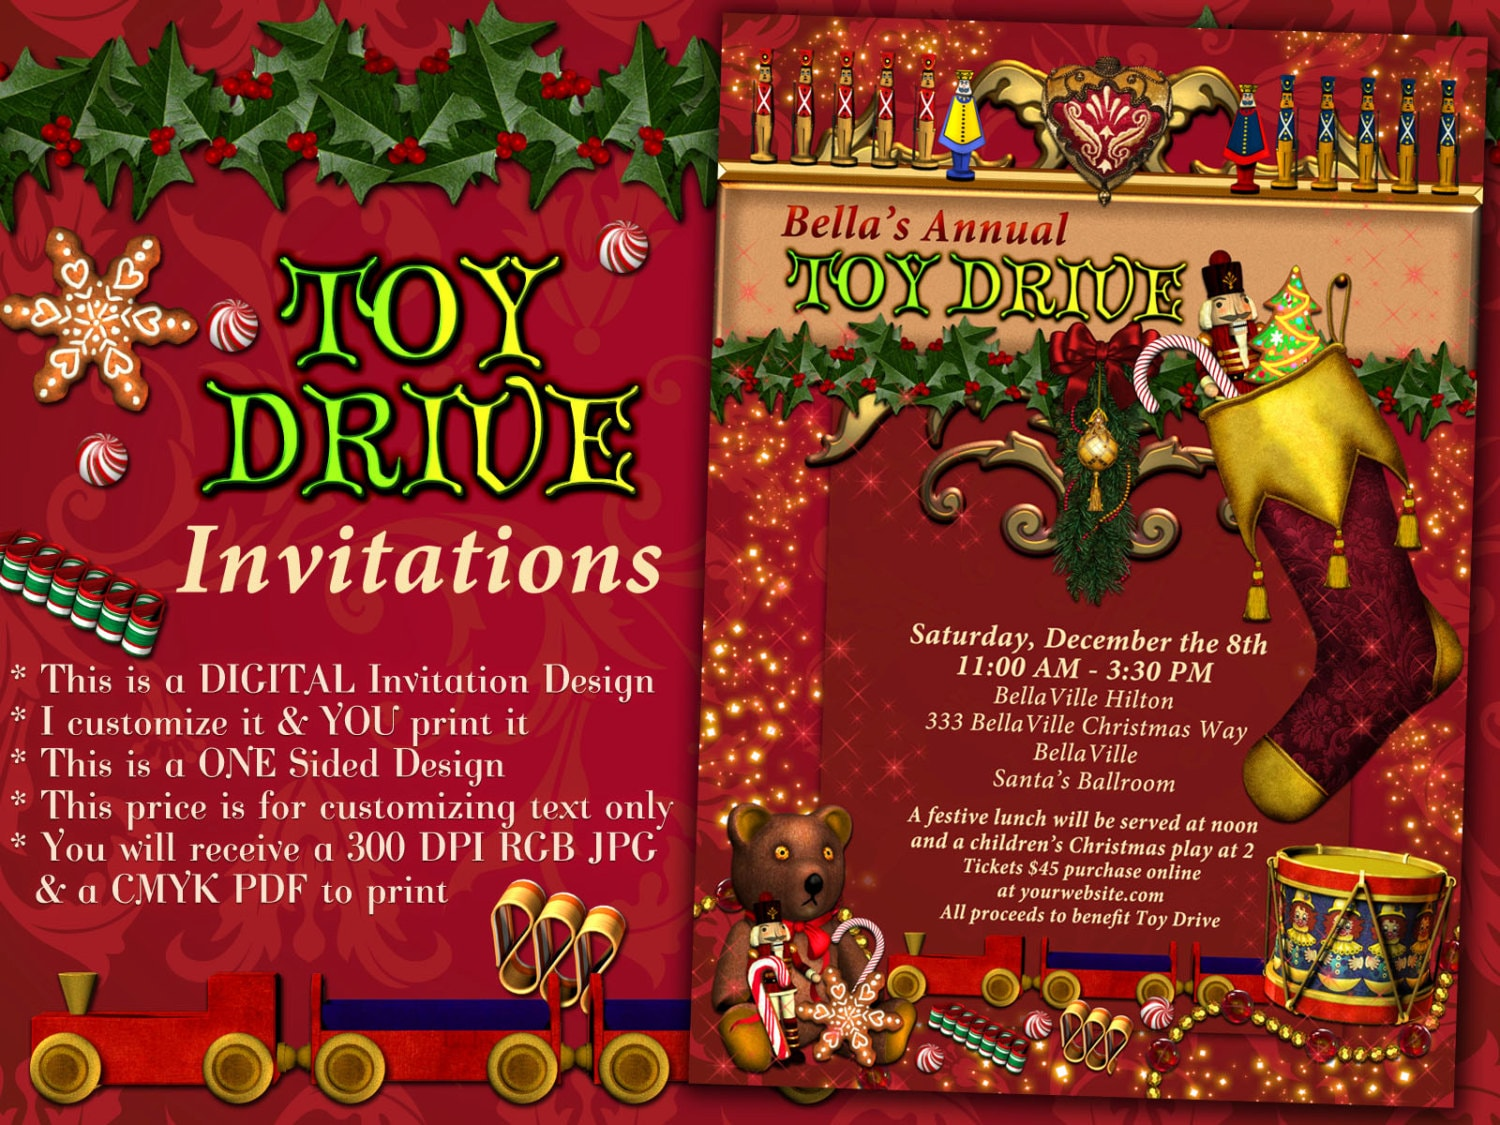 Toy Drive Invitations Christmas Party Invites Holiday